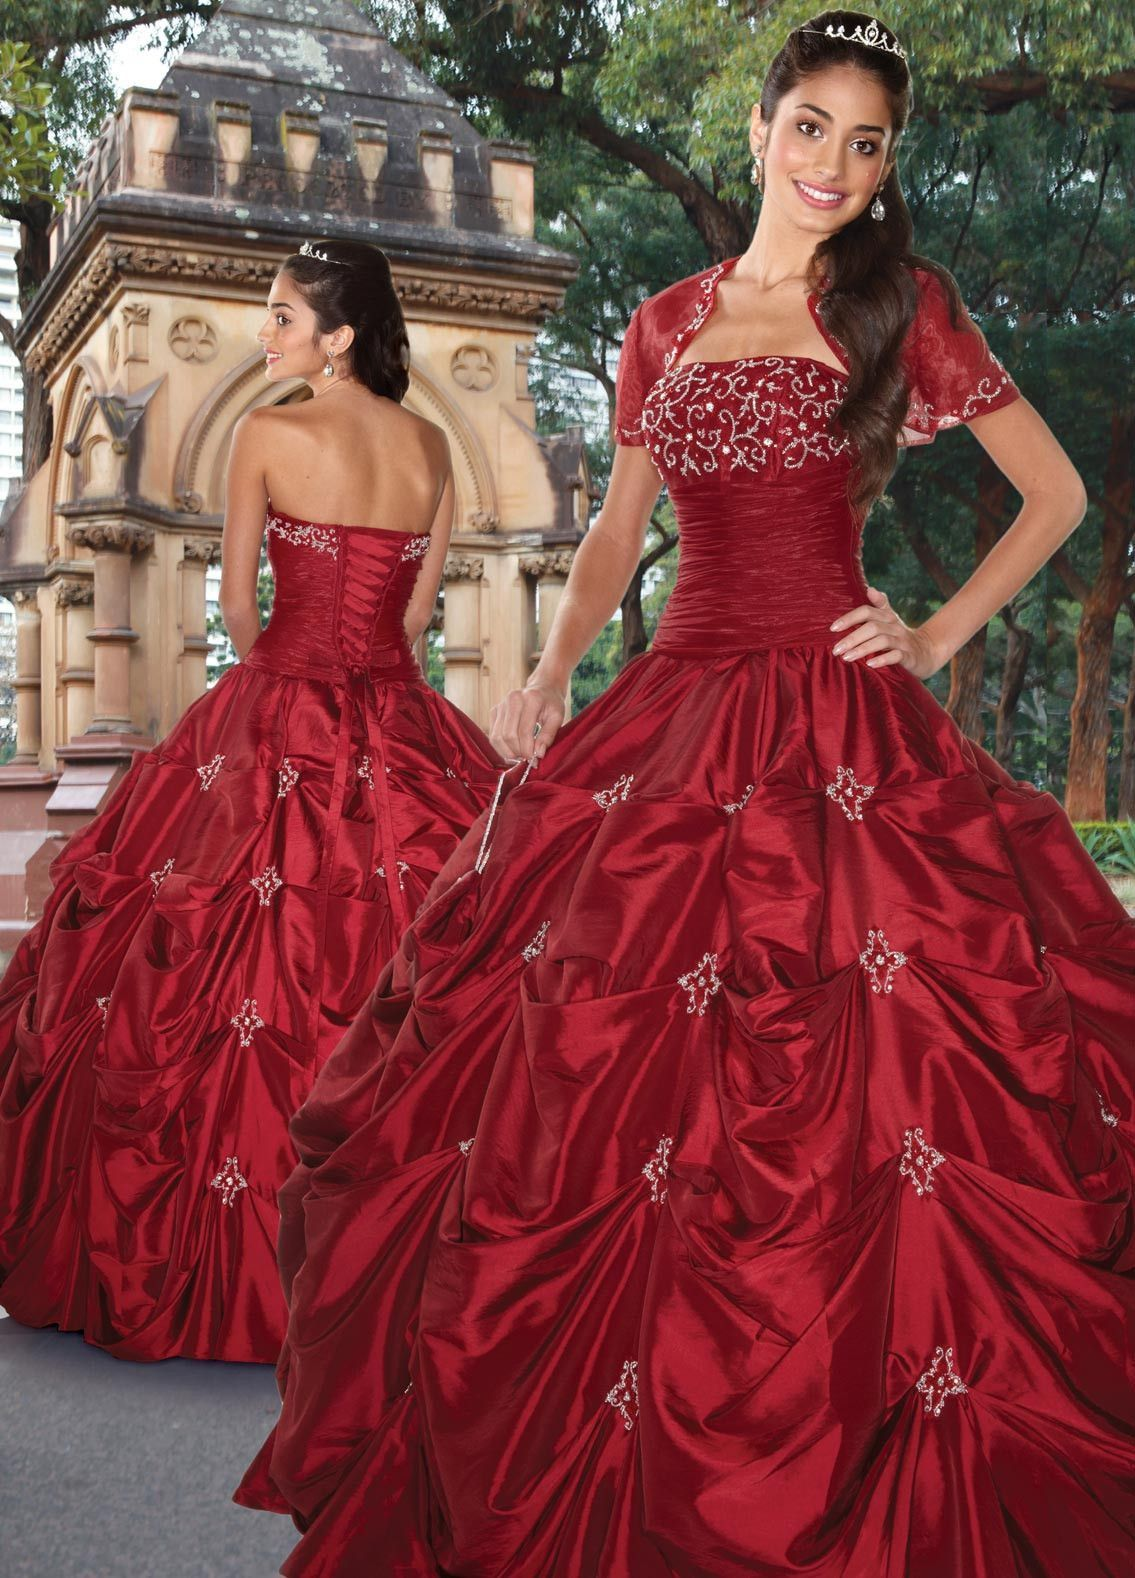 Q by davinci quinceanera dress style ball gowns elegant